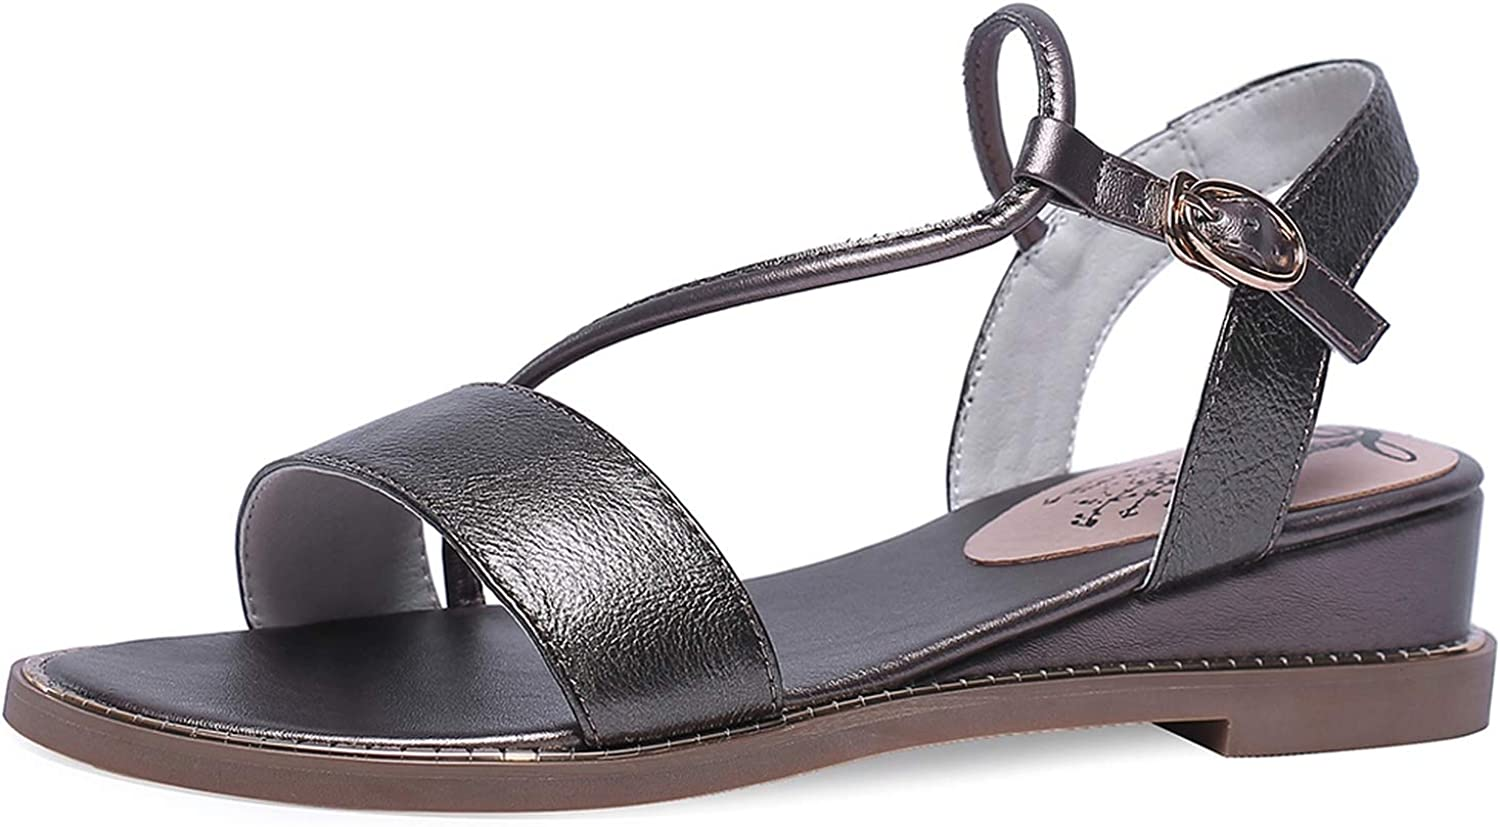 Leather Big Size 31-43 Buckle Open Toe Flat Heels Summer Sandals